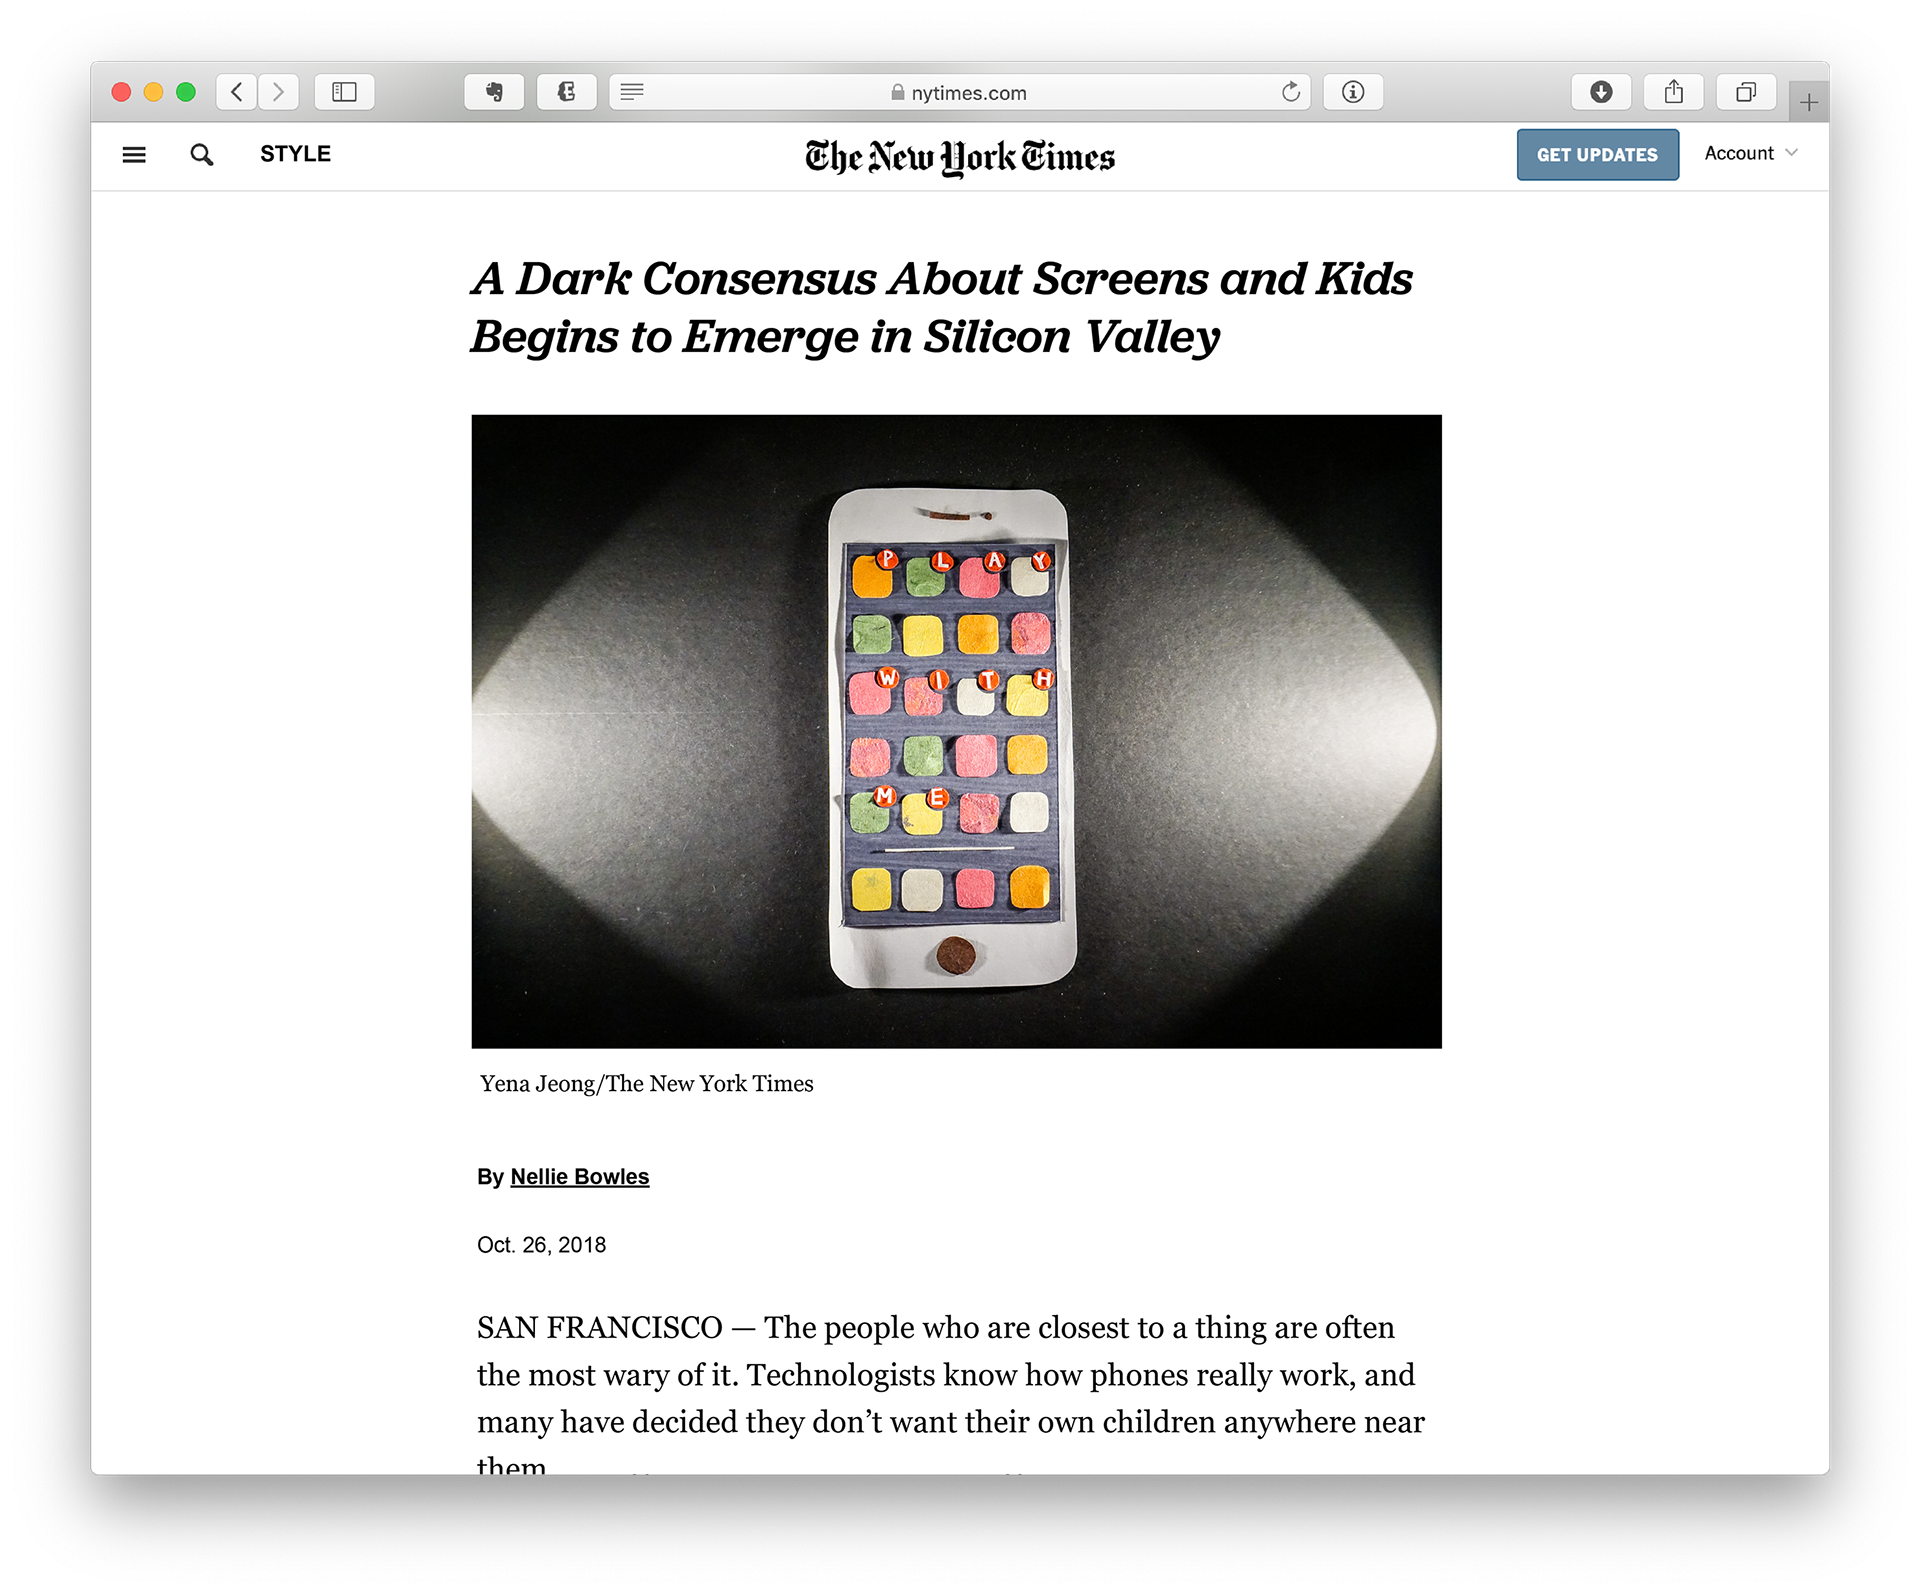 A Dark Consensus About Screens And Kids >> Yena Jeong Play With Me